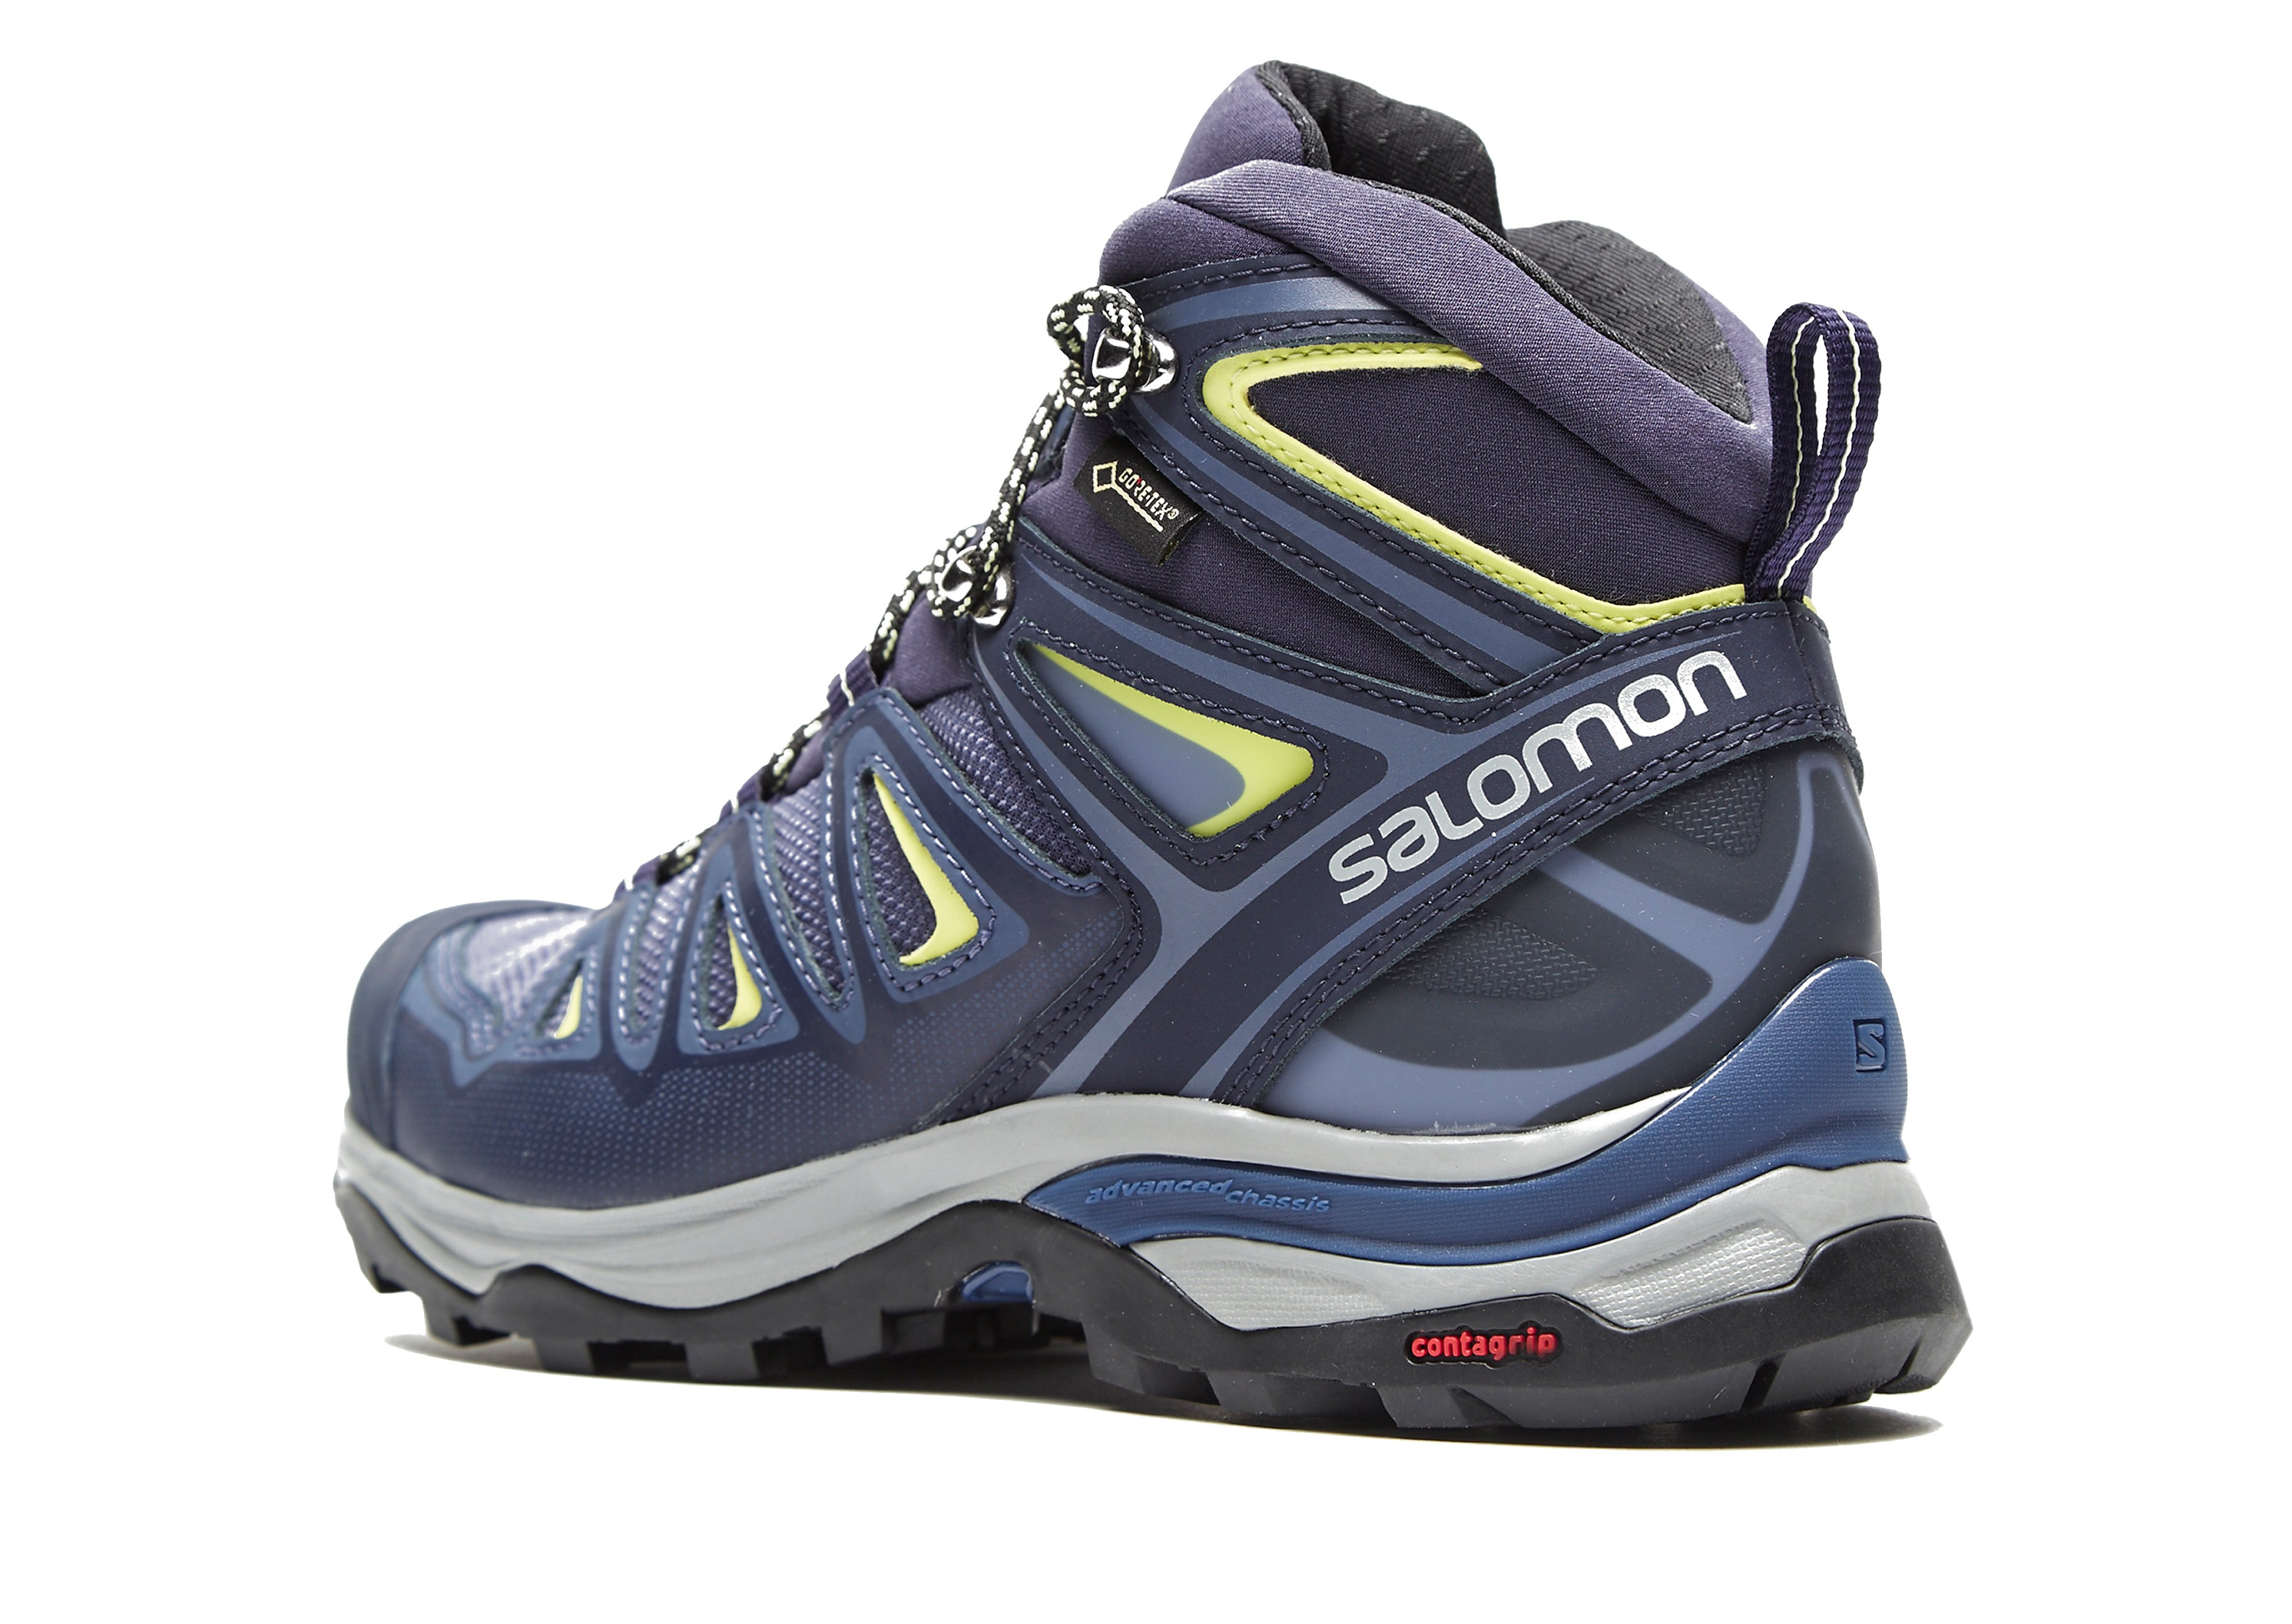 Salomon X Ultra 3 Mid GTX Women's